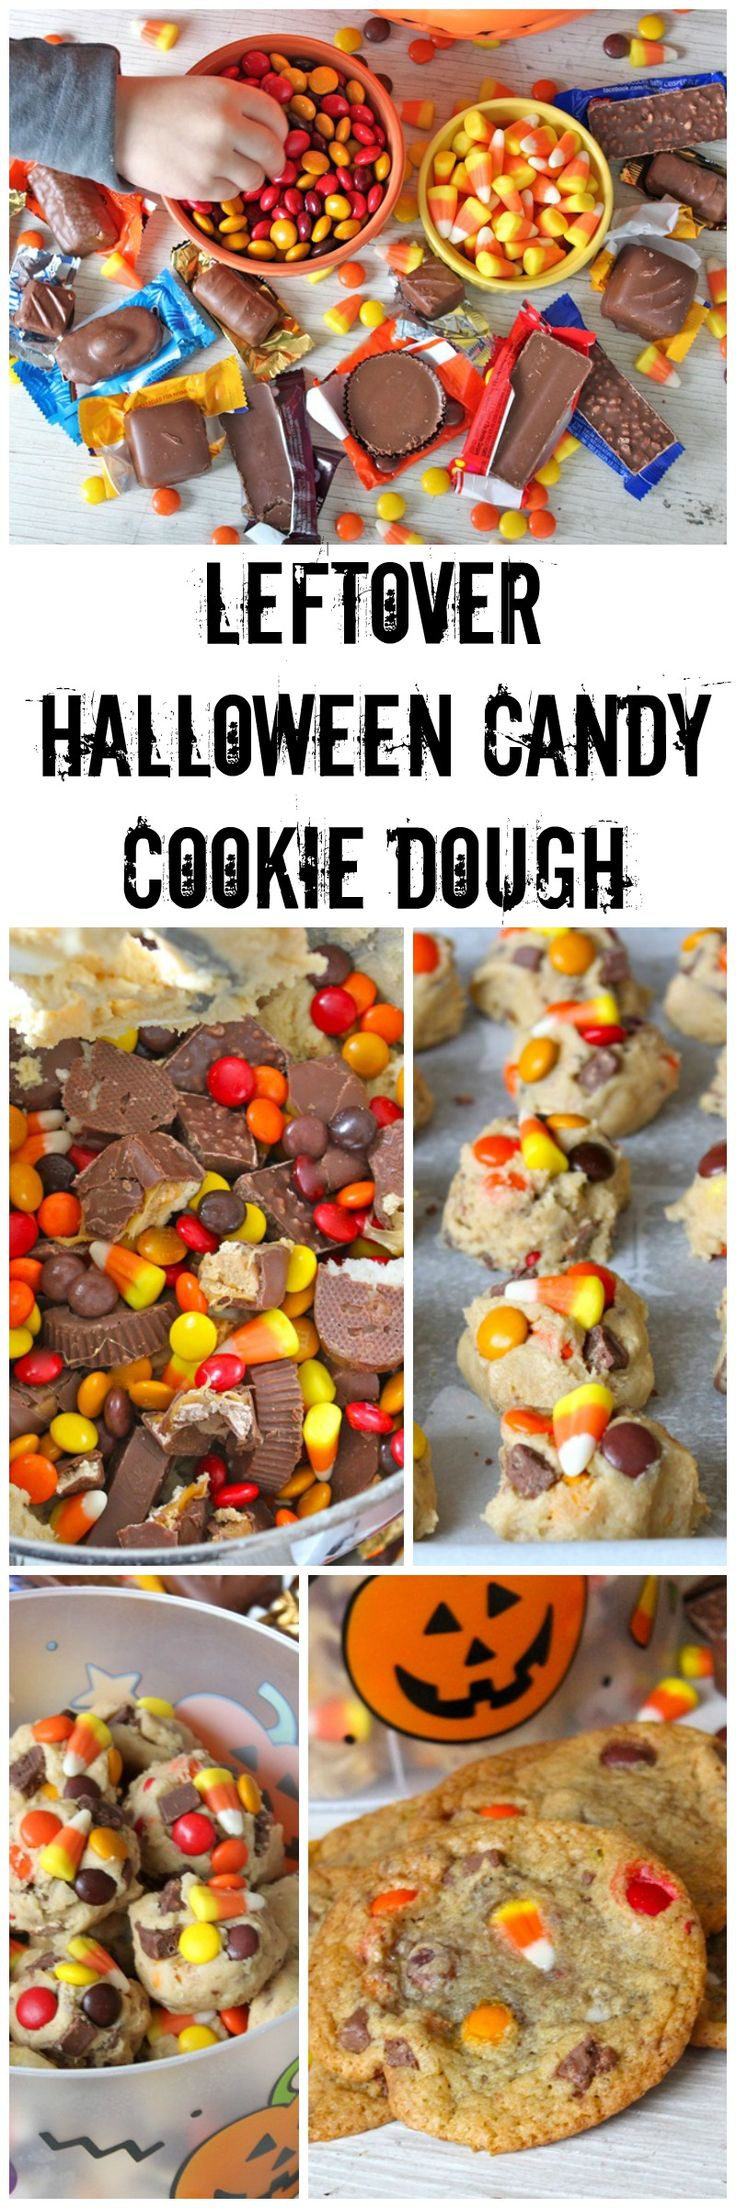 Leftover Halloween Candy Cookie Dough - mix your leftover Halloween candy into a cookie dough that can be frozen and then baked whenever you're craving a warm and yummy cookie!